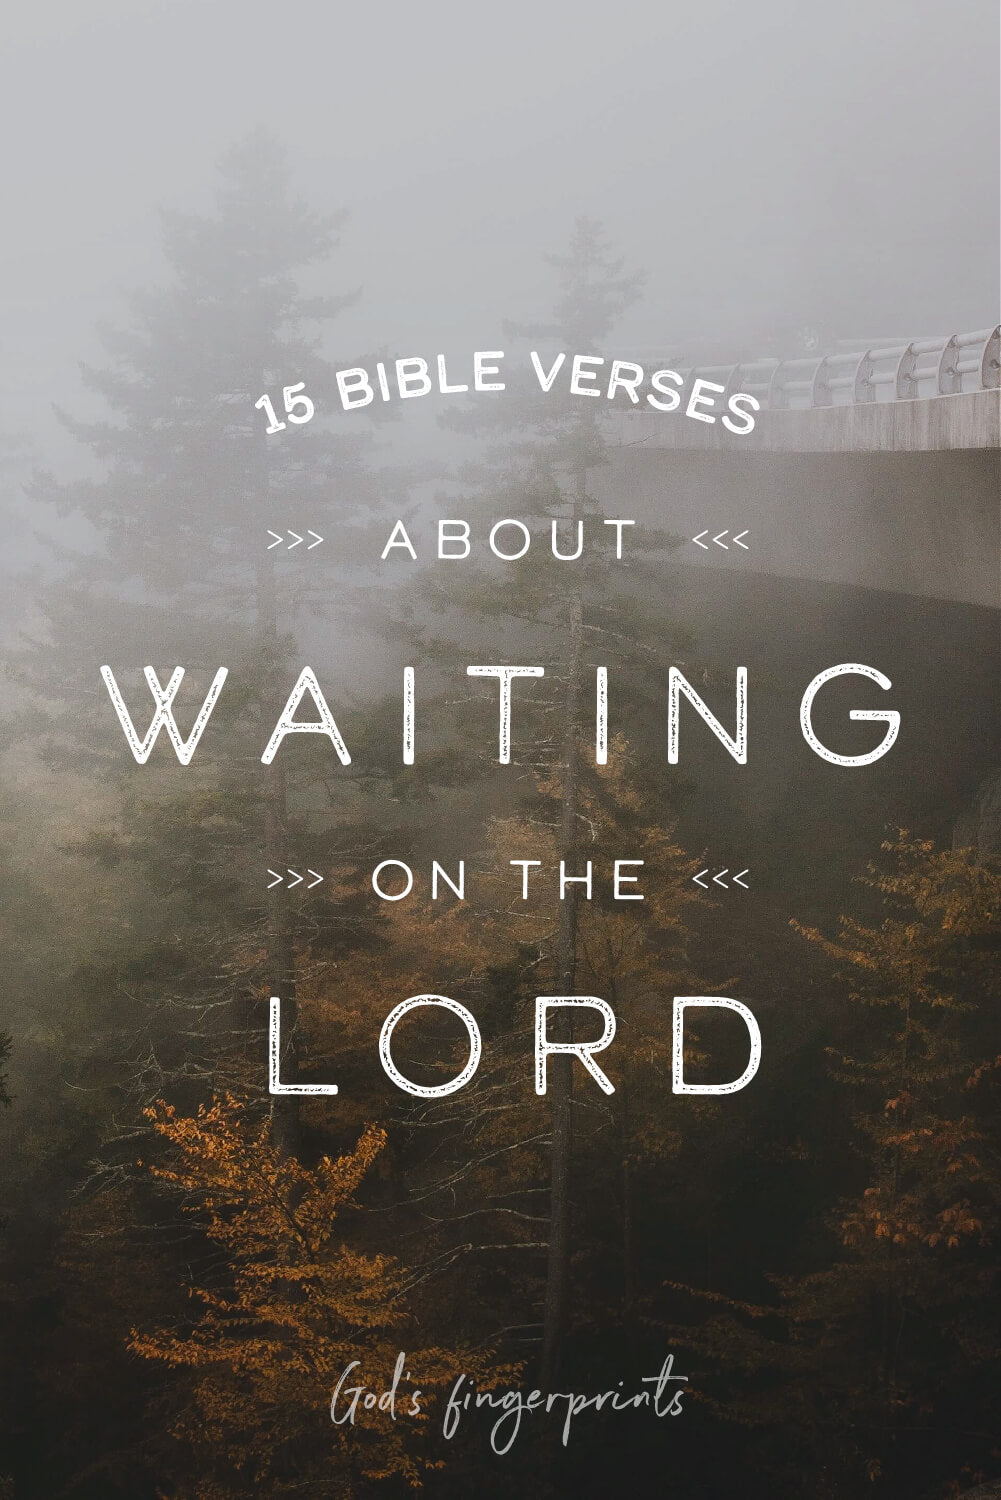 15 Bible Verses about Waiting on the Lord